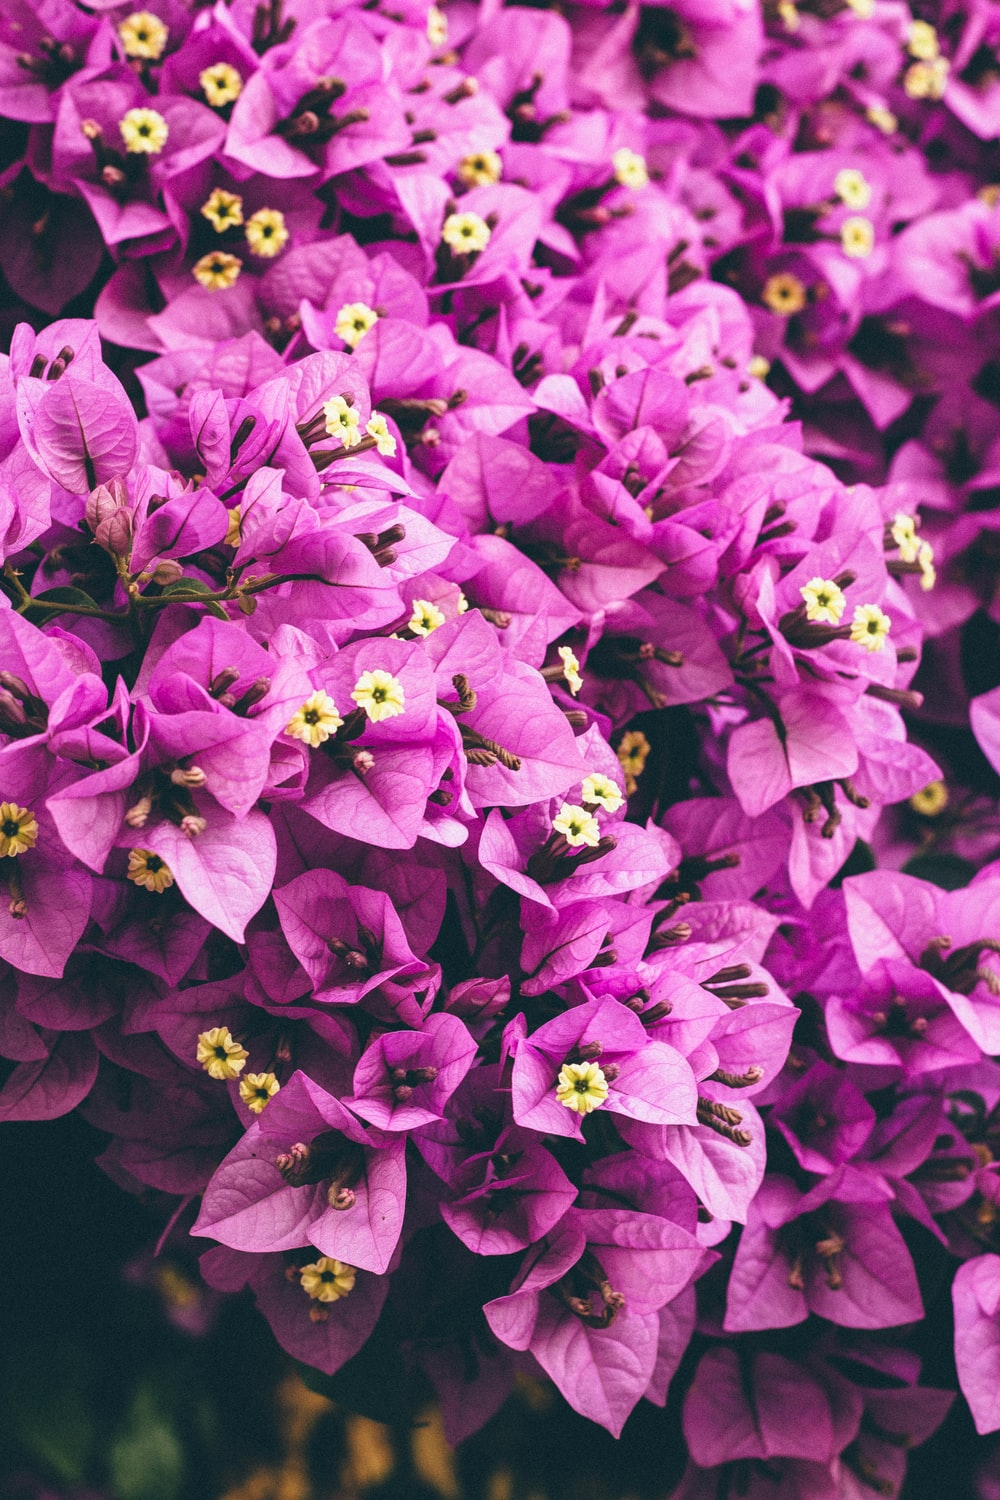 Flower background pictures download free images on unsplash a dense grouping of purple flowers mightylinksfo Choice Image